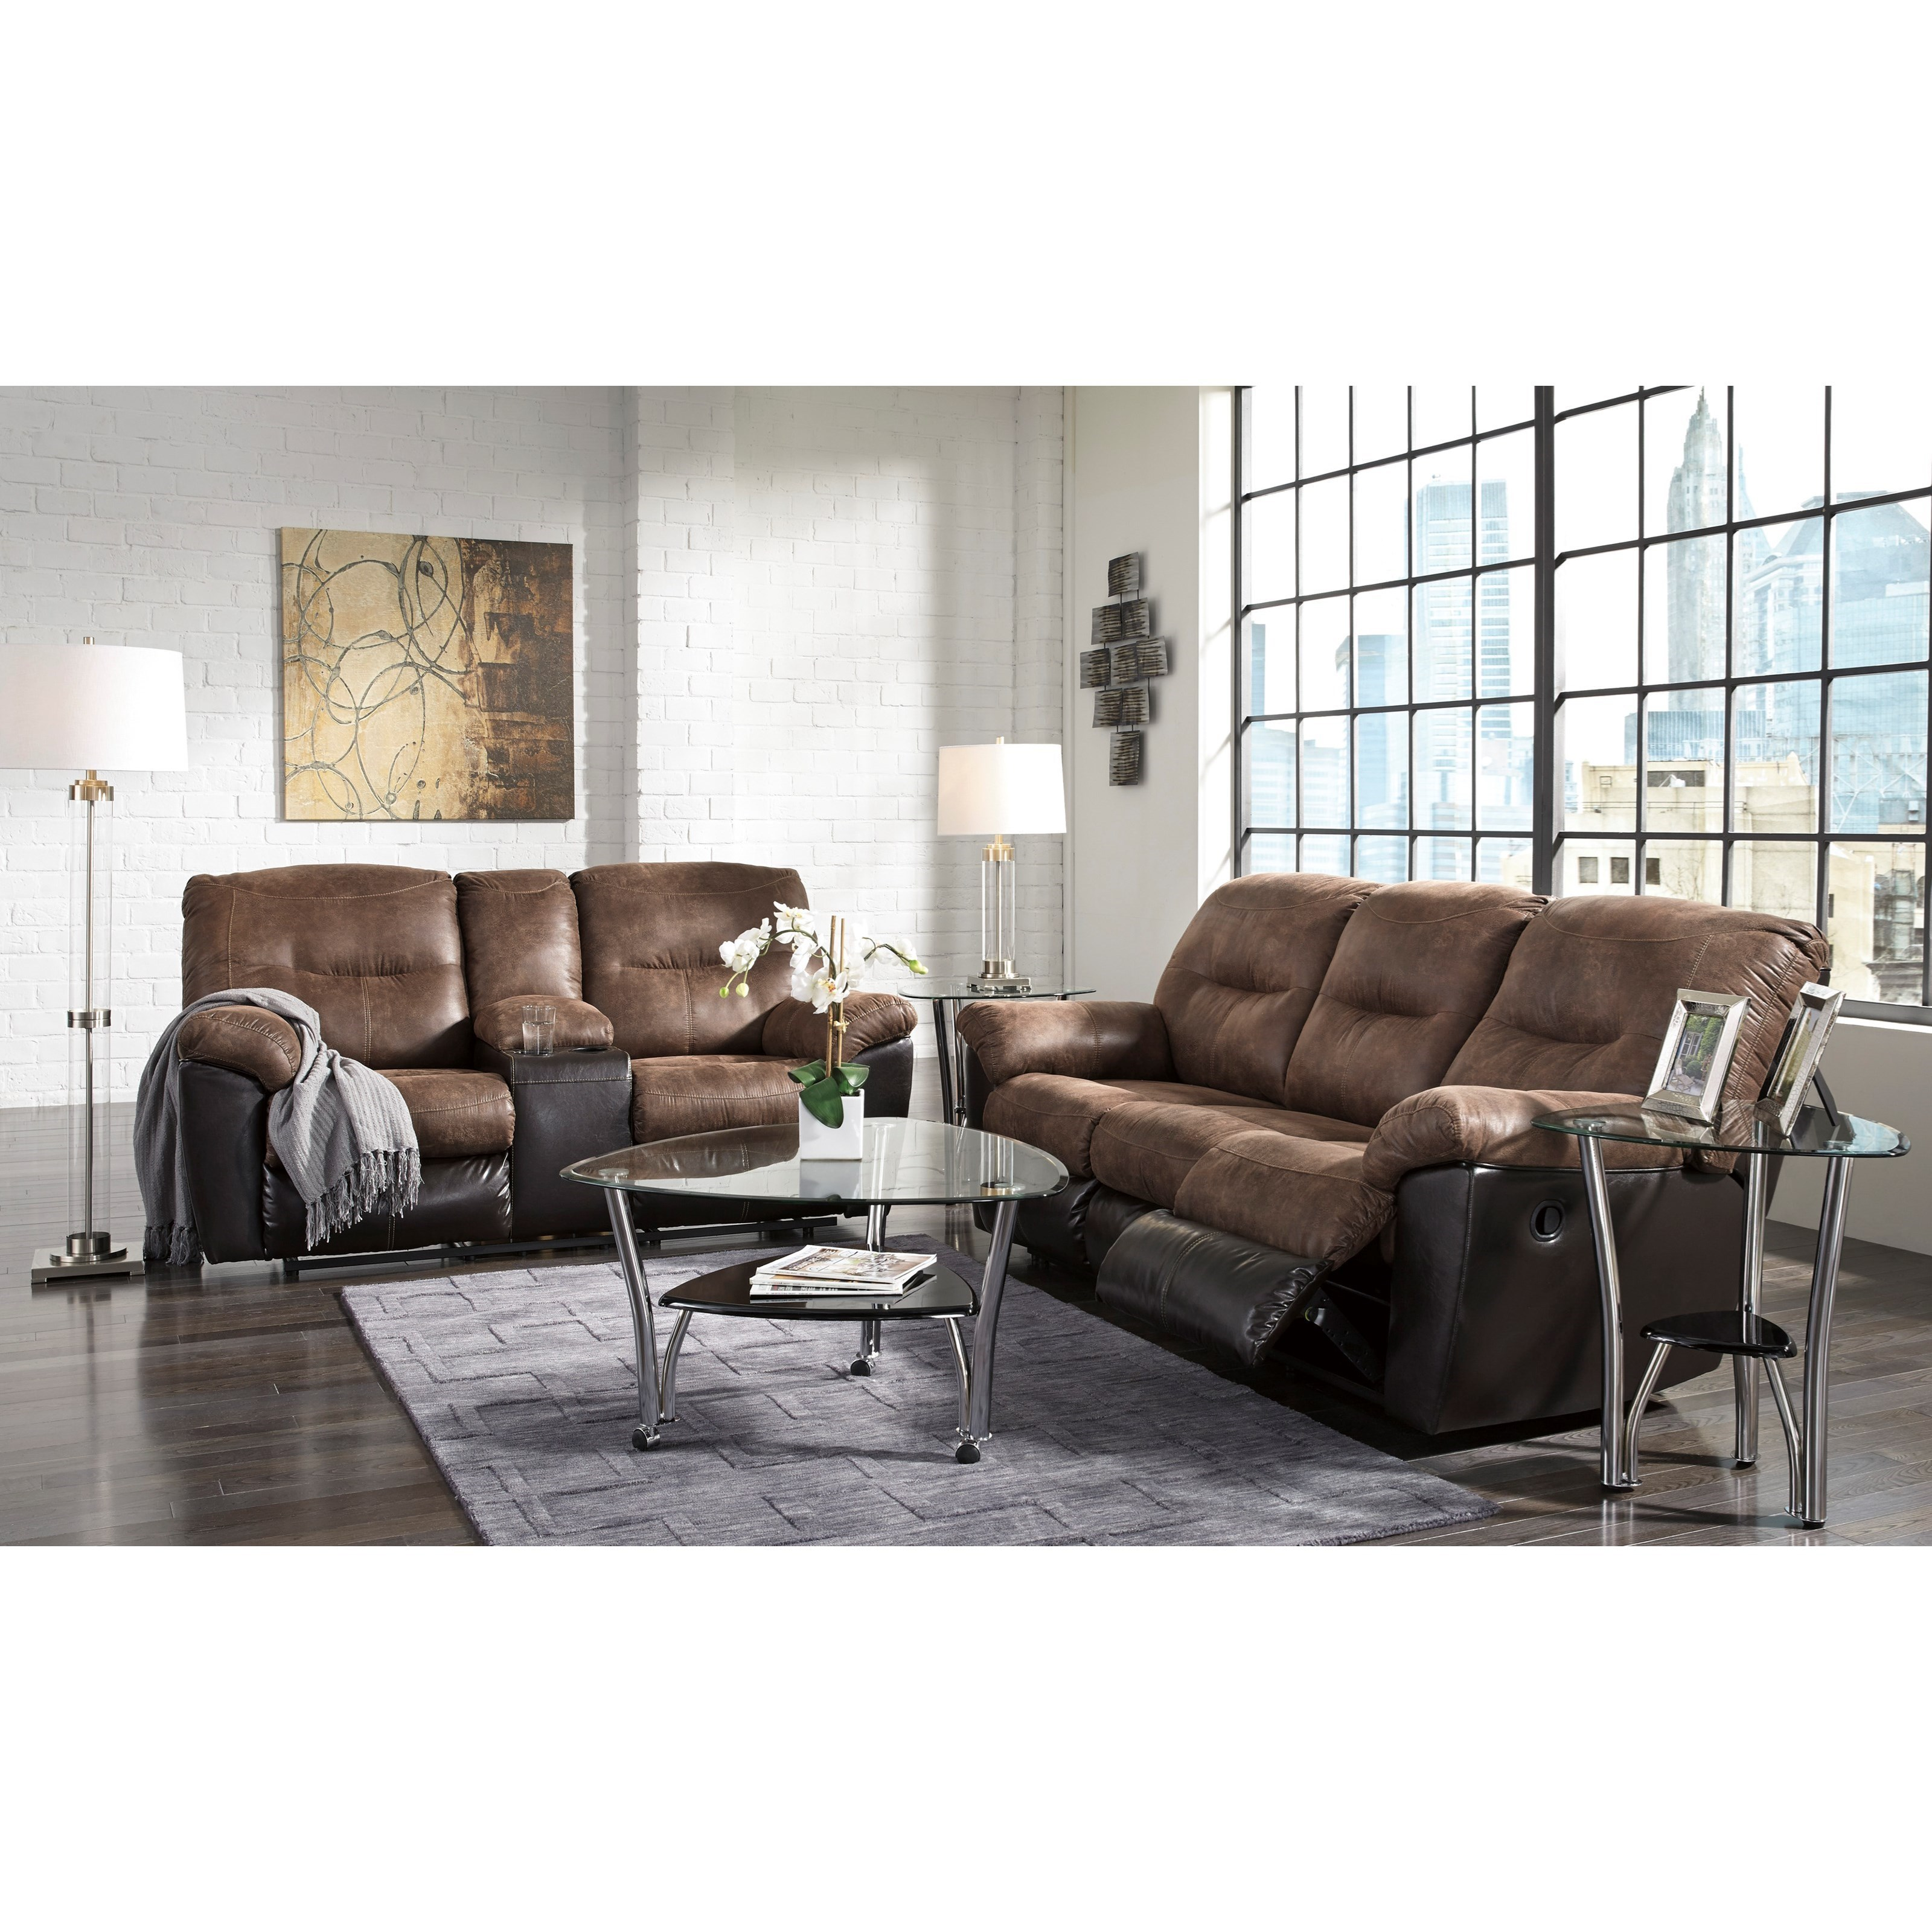 Signature Design By Ashley Follett Two Tone Faux Leather Reclining Sofa Part 56